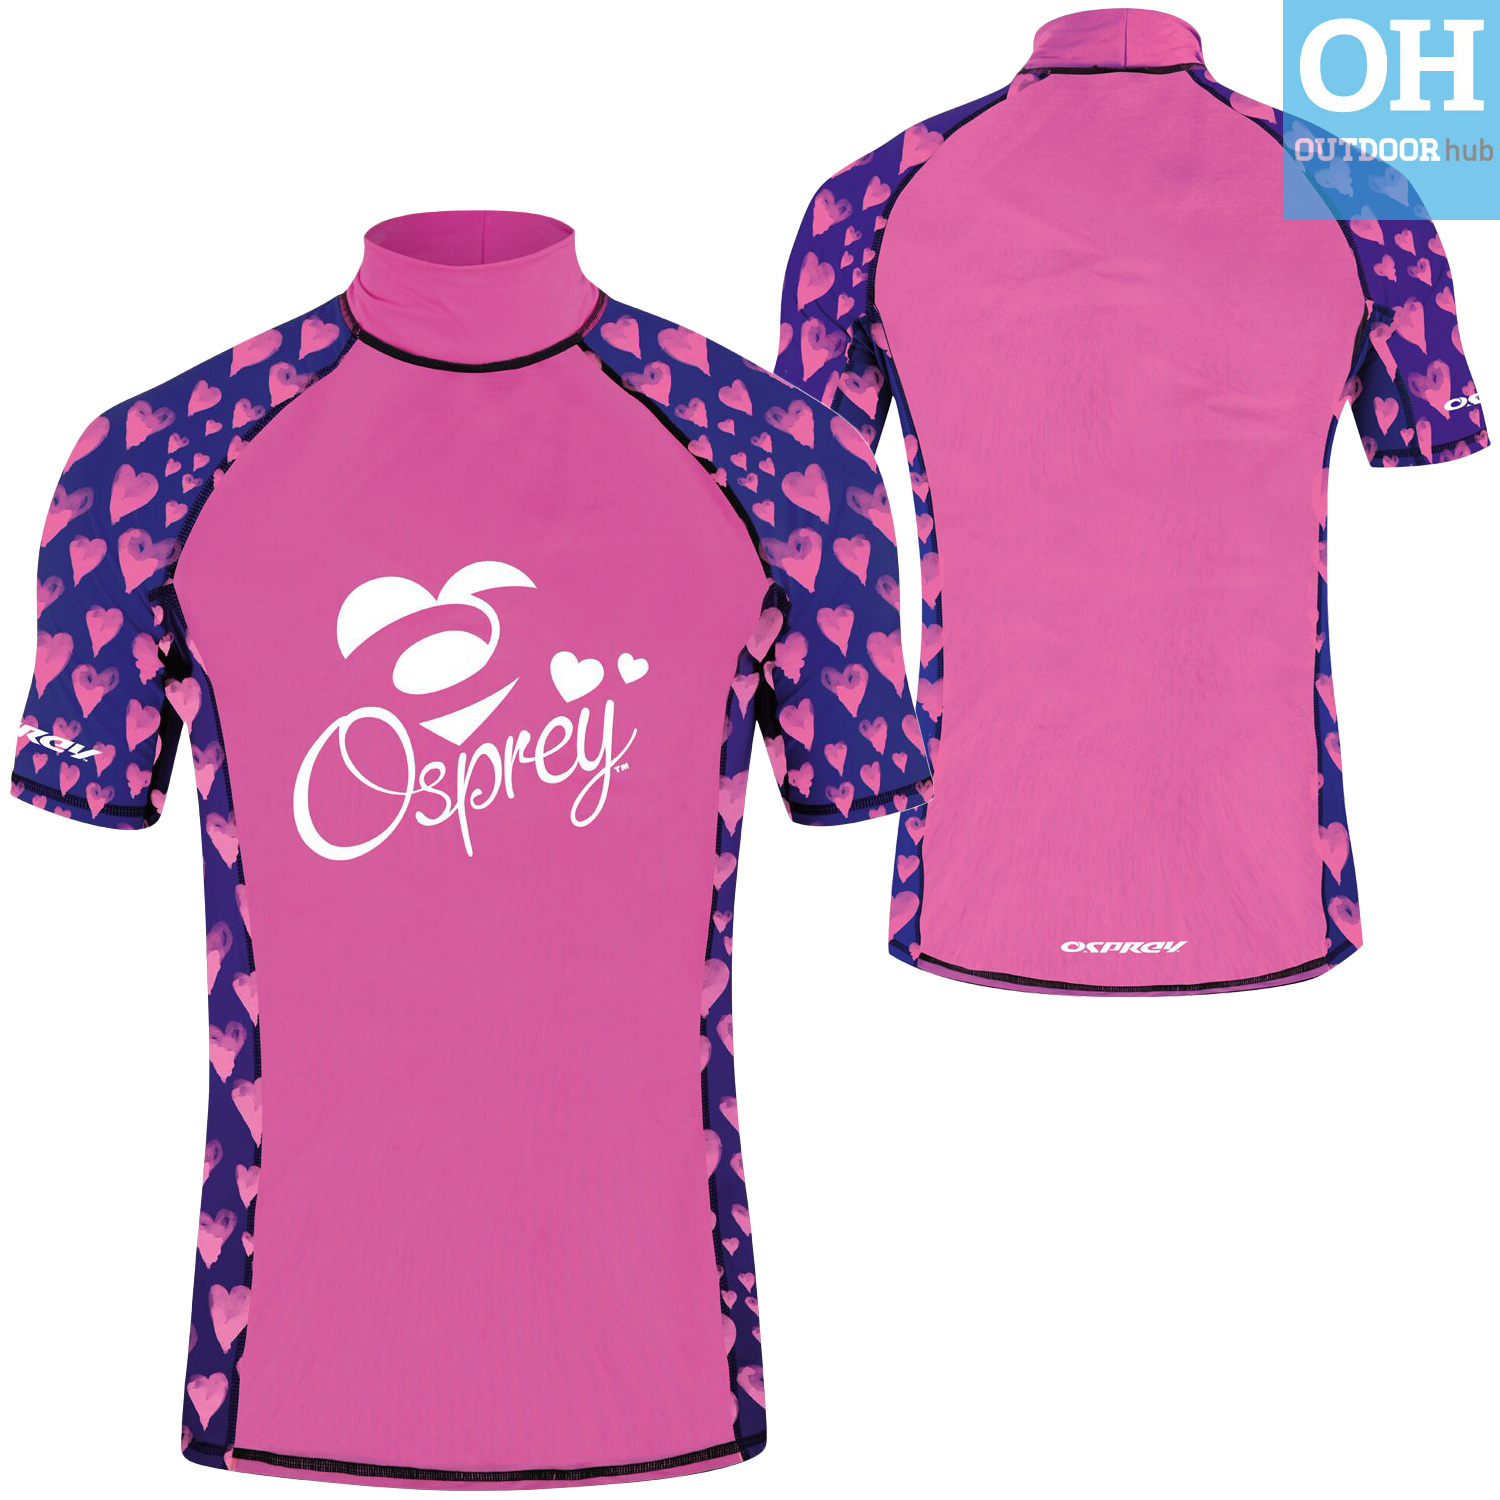 Osprey-Ladies-Short-Sleeve-Rash-Vest-Womens-Surf-T-Shirt-UV-50-Protection-Guard thumbnail 21